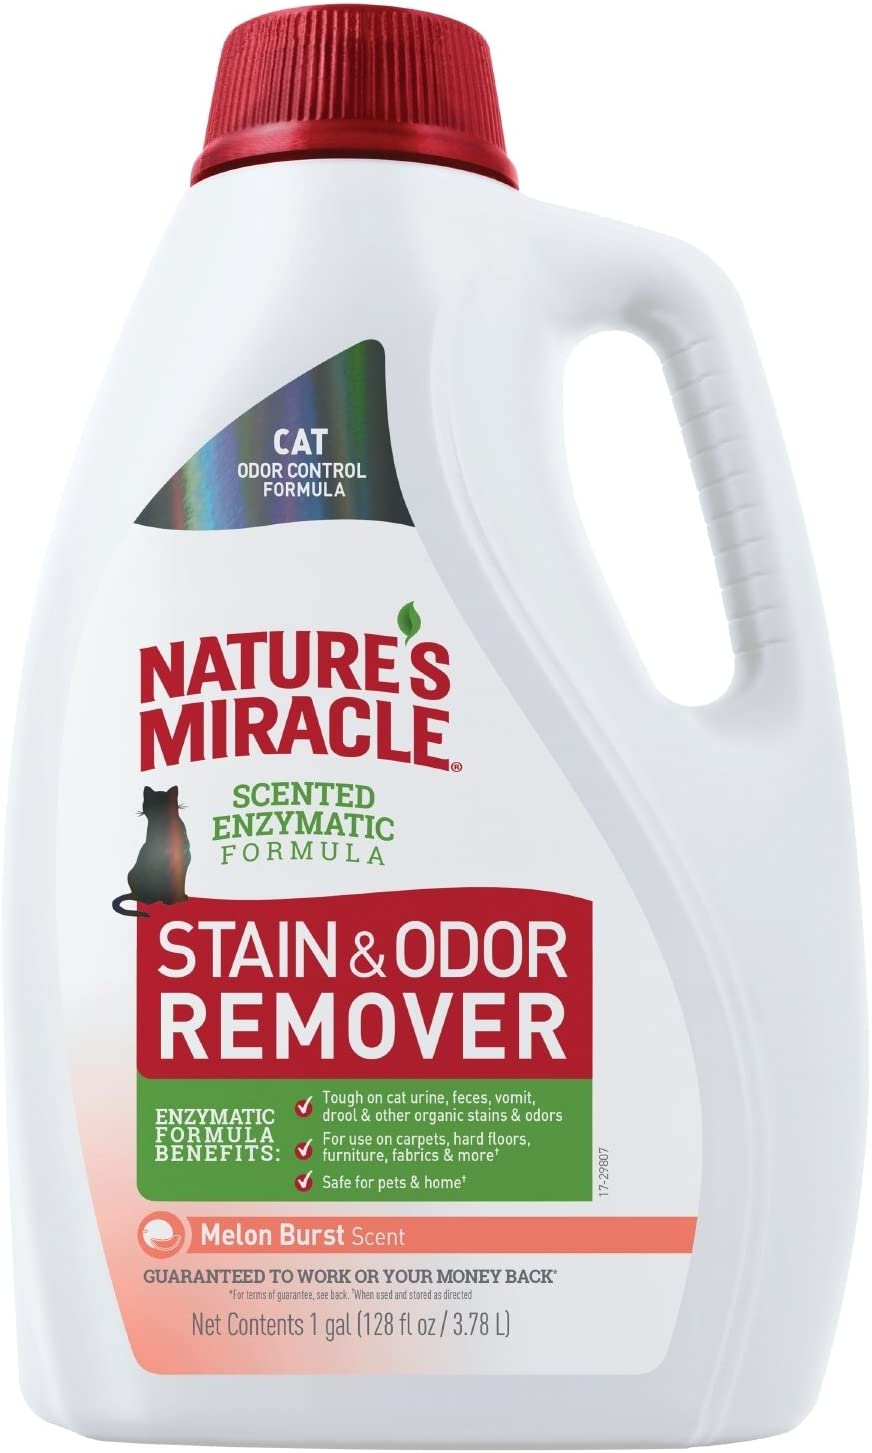 Nature's Miracle Just for Cat Stain and Odor Remover